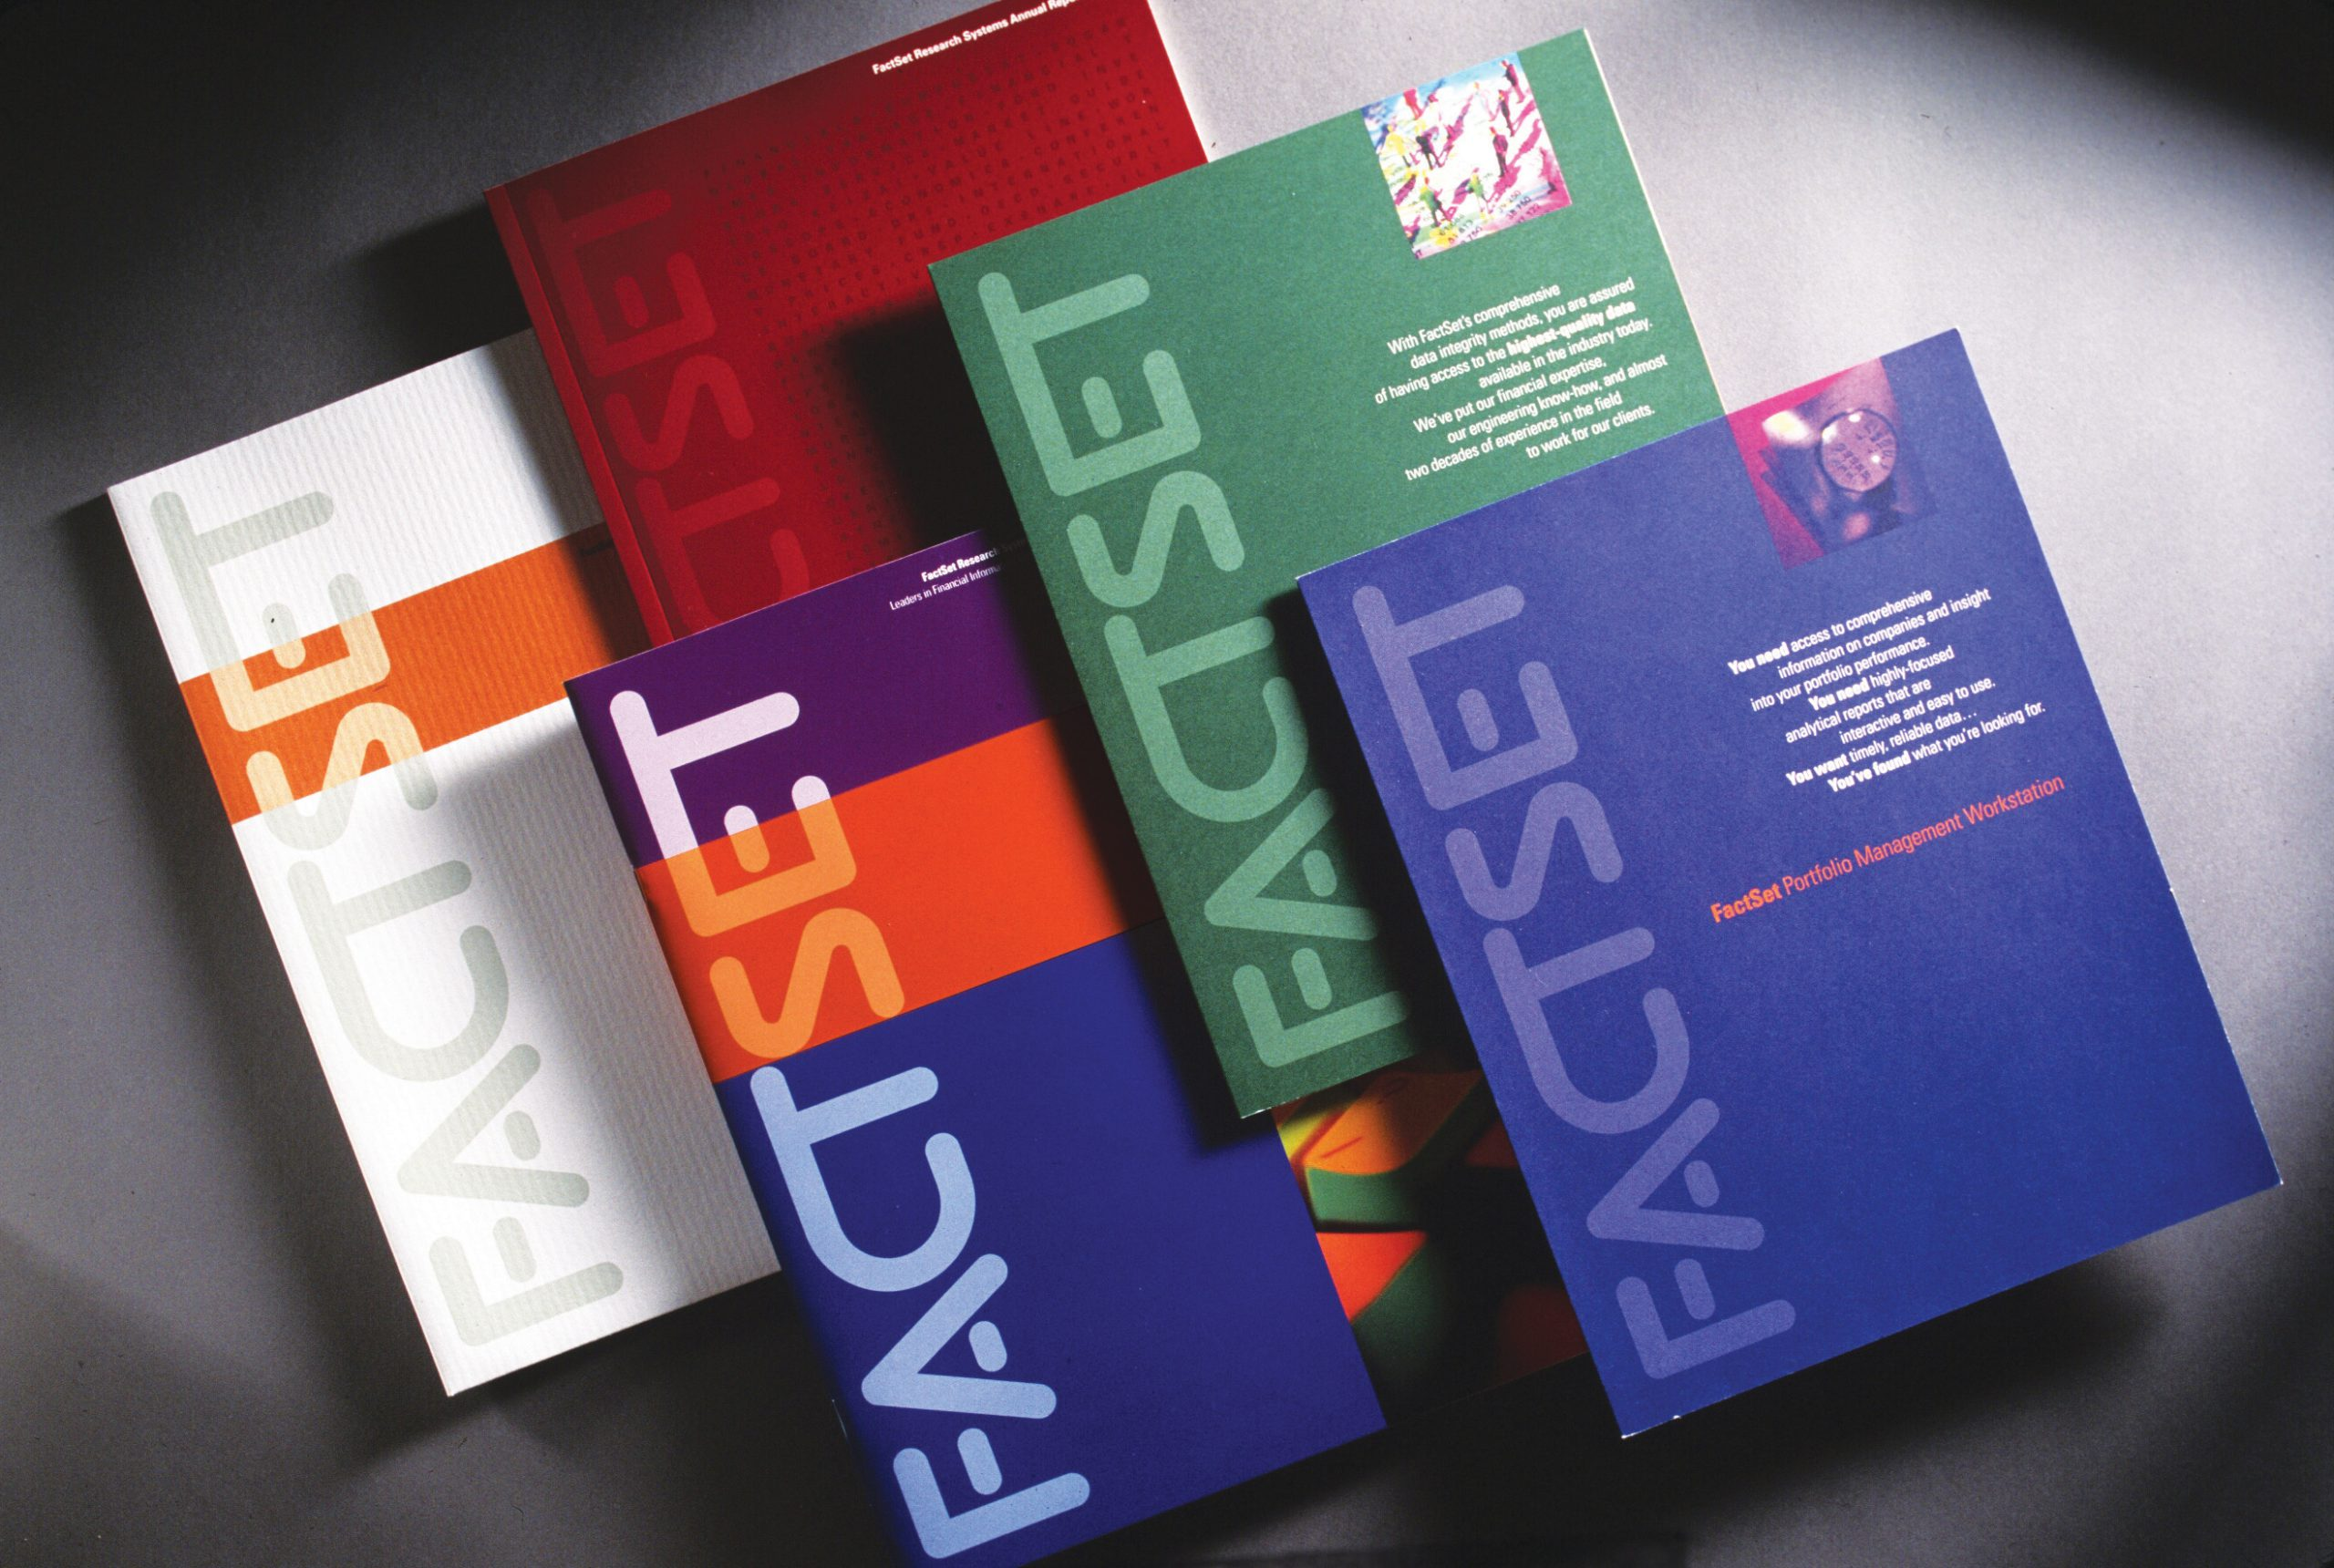 Project image 1 for Print Communication, FactSet Research Systems